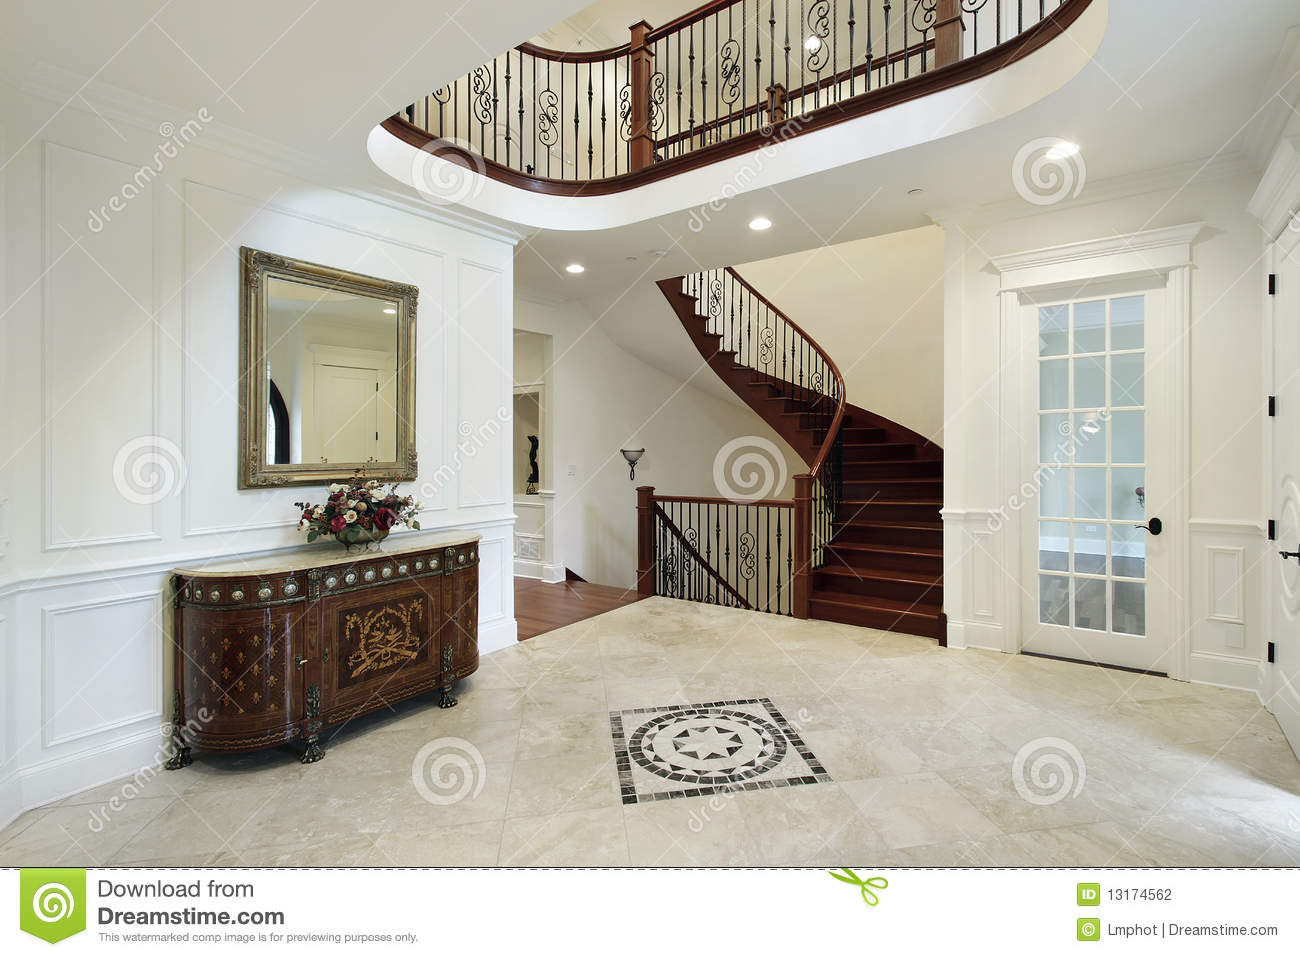 Foyer Tile Floor Designs : Foyer with floor design stock photography image